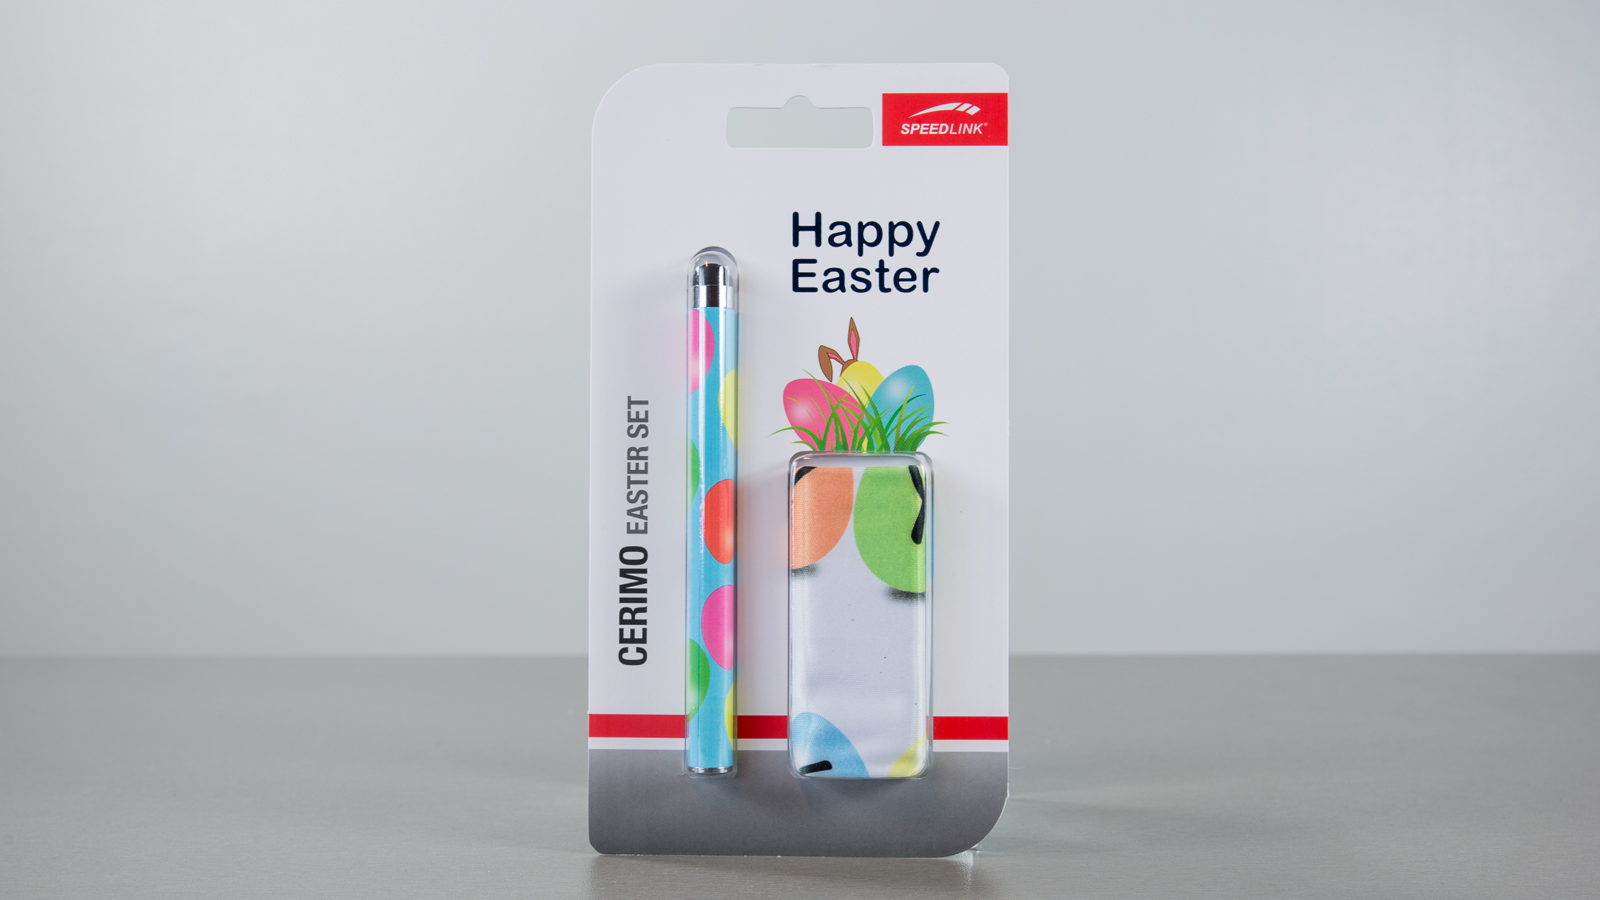 168-kasulik-vidin-Speedlink-Happy-Easter-3